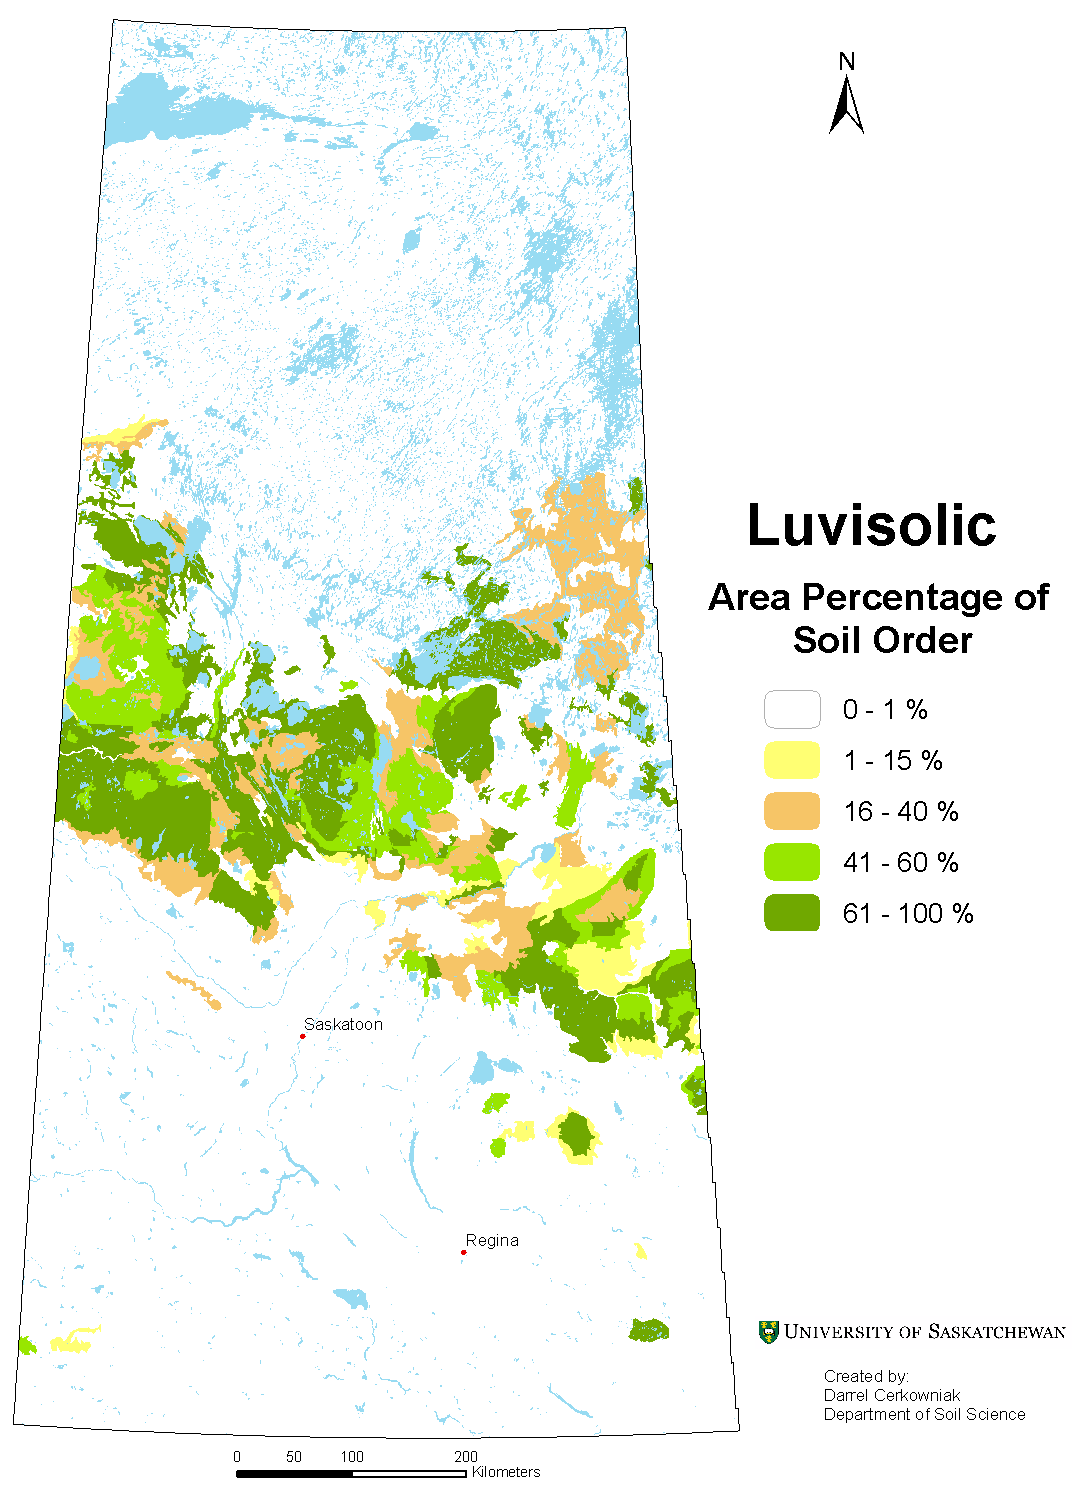 Distribution of Luvisolic soils in Saskatchewan